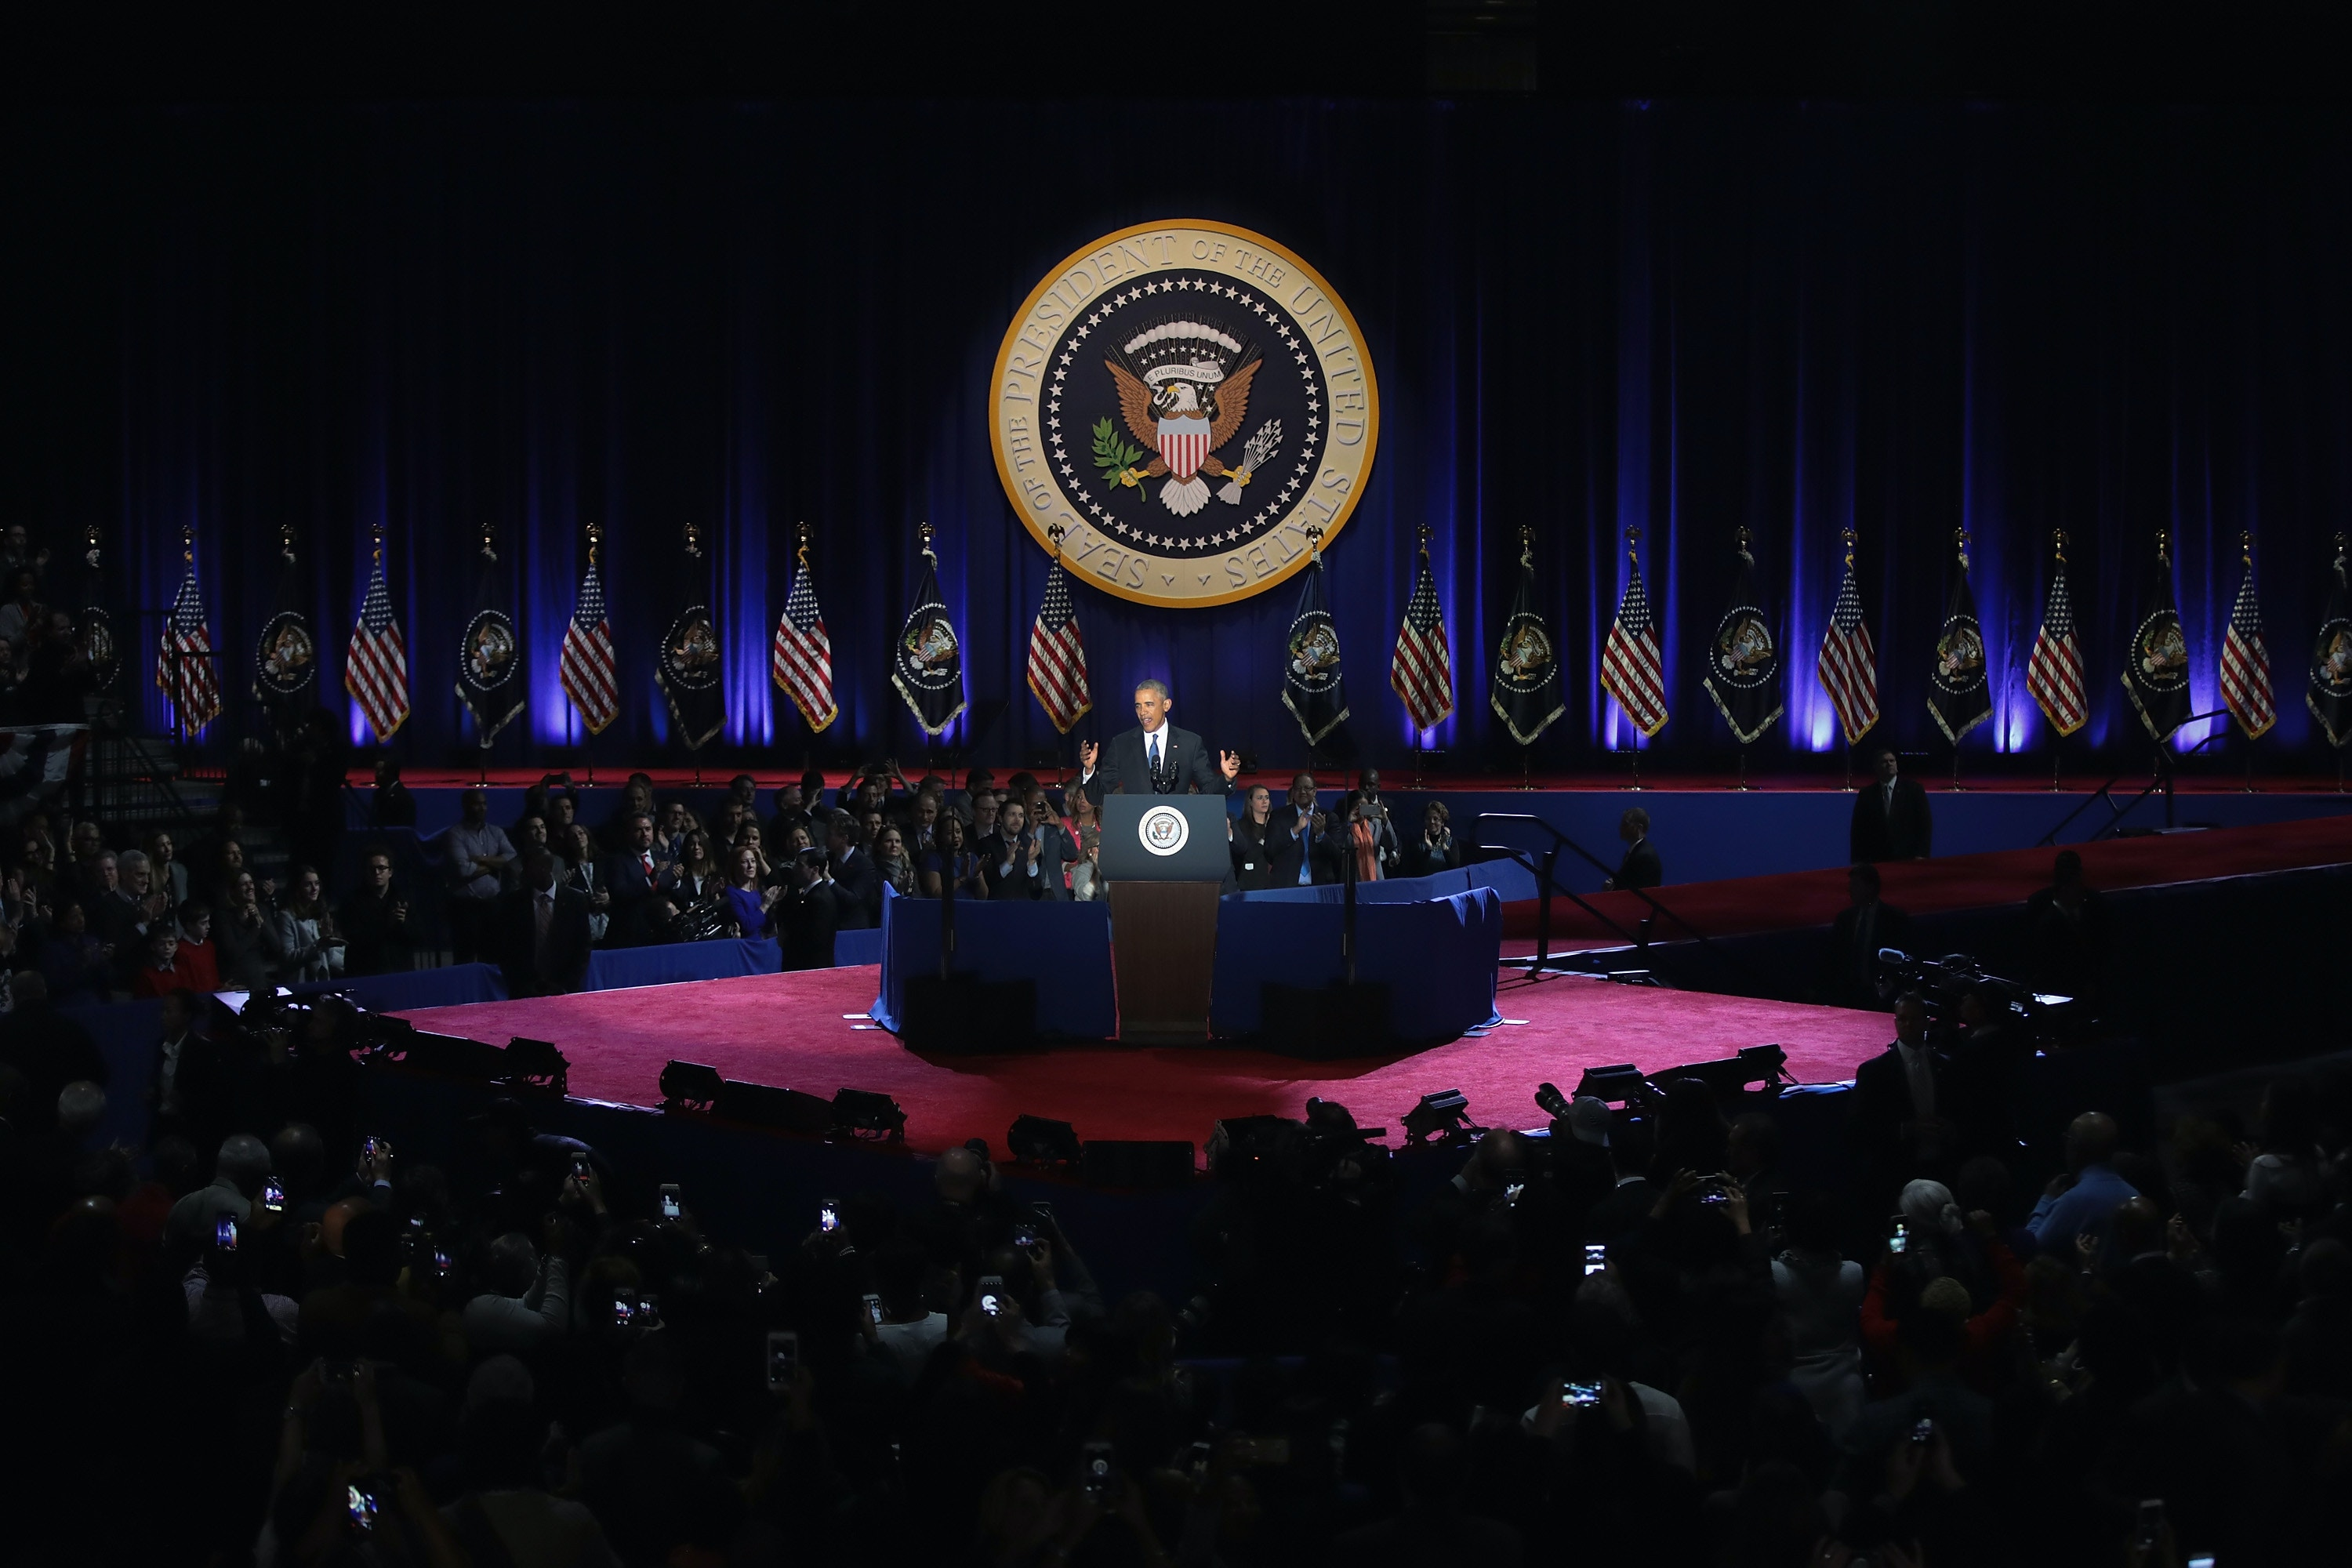 CHICAGO, IL - JANUARY 10:  President Barack Obama delivers a farewell speech to the nation on January 10, 2017 in Chicago, Illinois. President-elect Donald Trump will be sworn in the as the 45th president on January 20.  (Photo by Scott Olson/Getty Images)